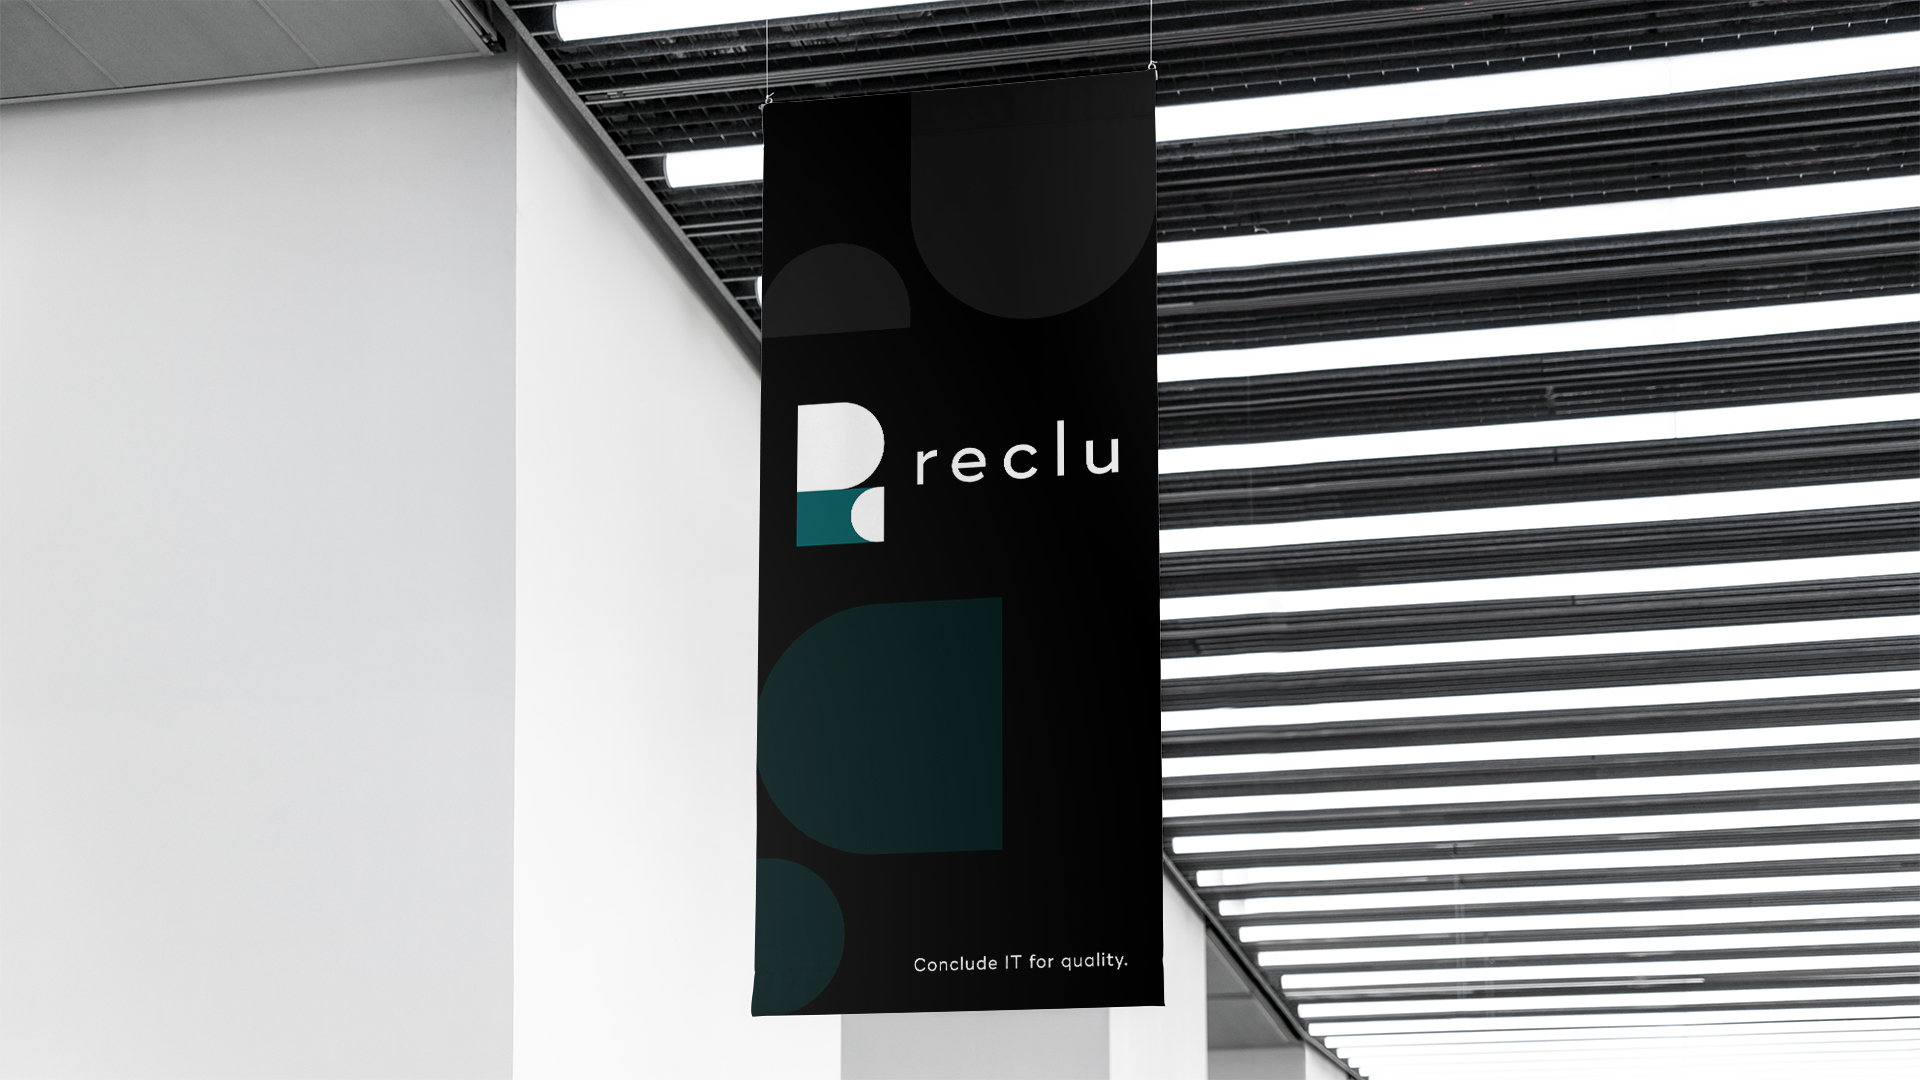 Reclu-Visual-Identity-by-Emtisquare-10